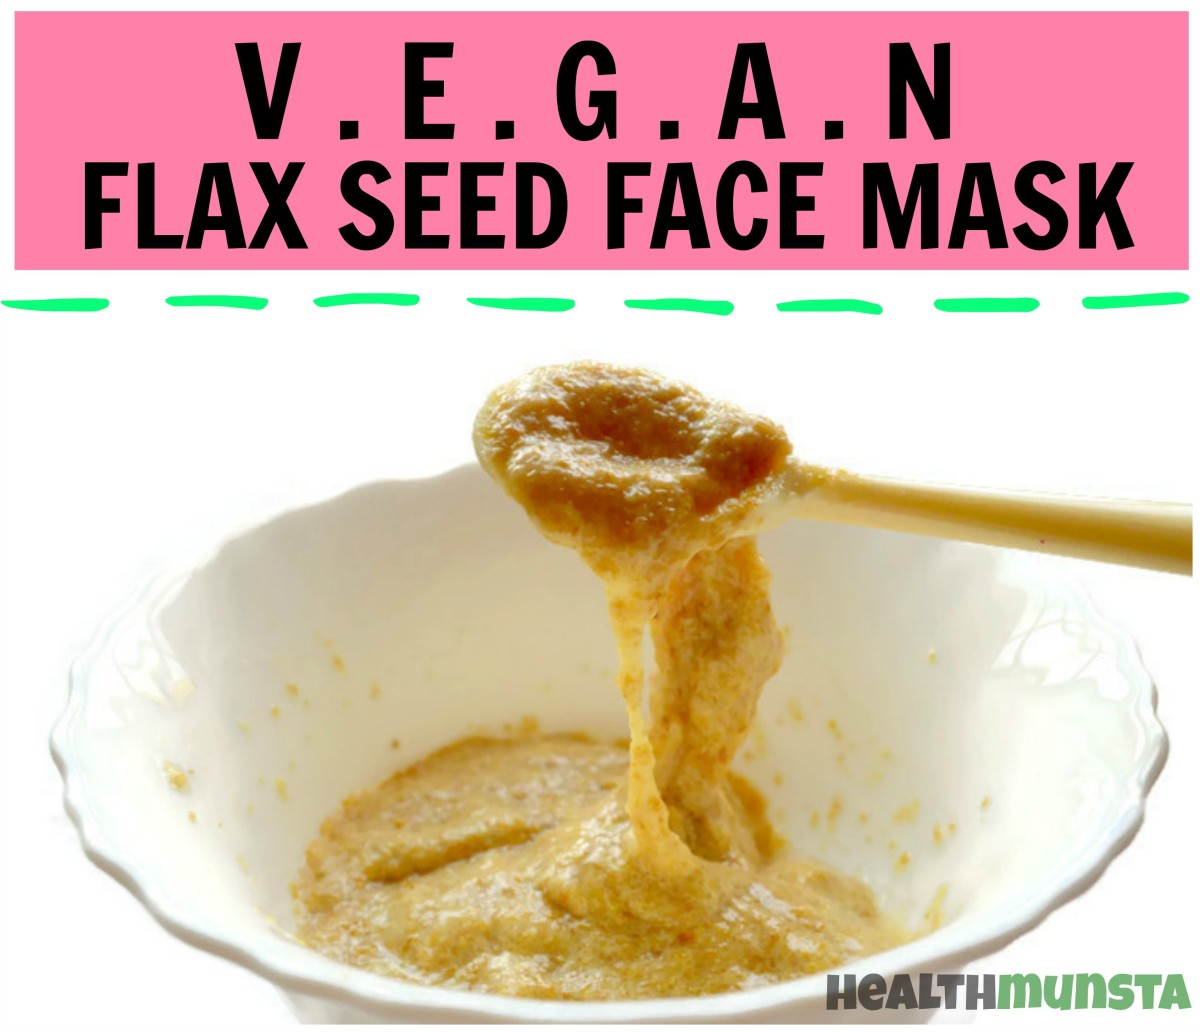 This flaxseed face mask is basically a substitute for an egg white face mask. It helps tighten and tone skin and you wouldn't even believe when I say it smells amazing too!